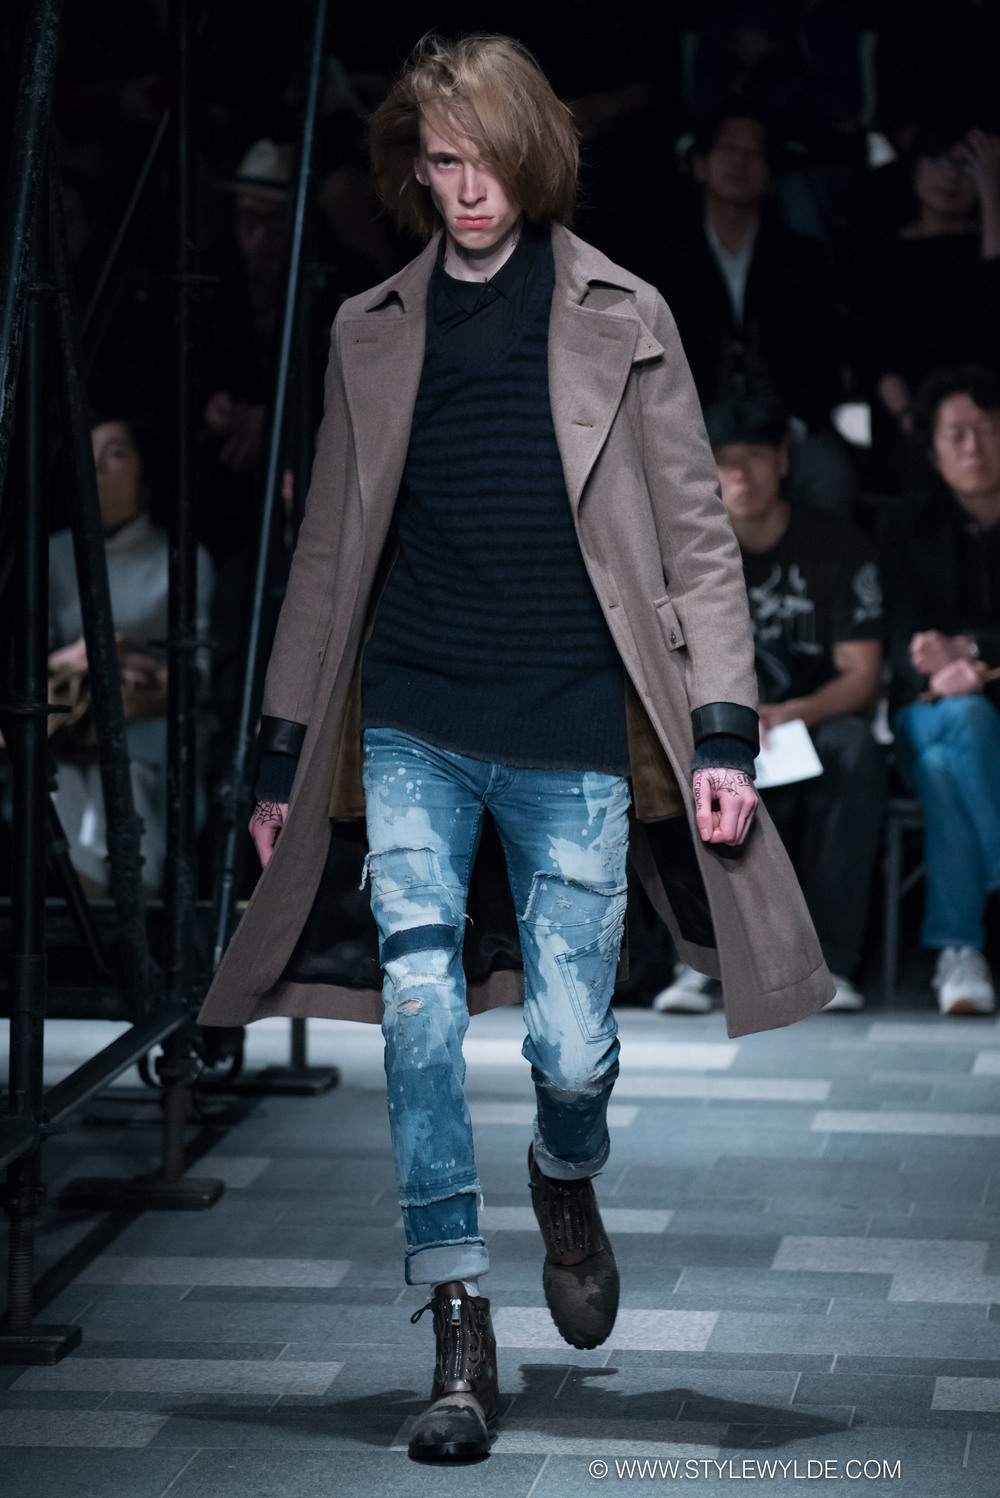 stylewylde_5351_pour_les_hommes_fw_2016-18.jpg